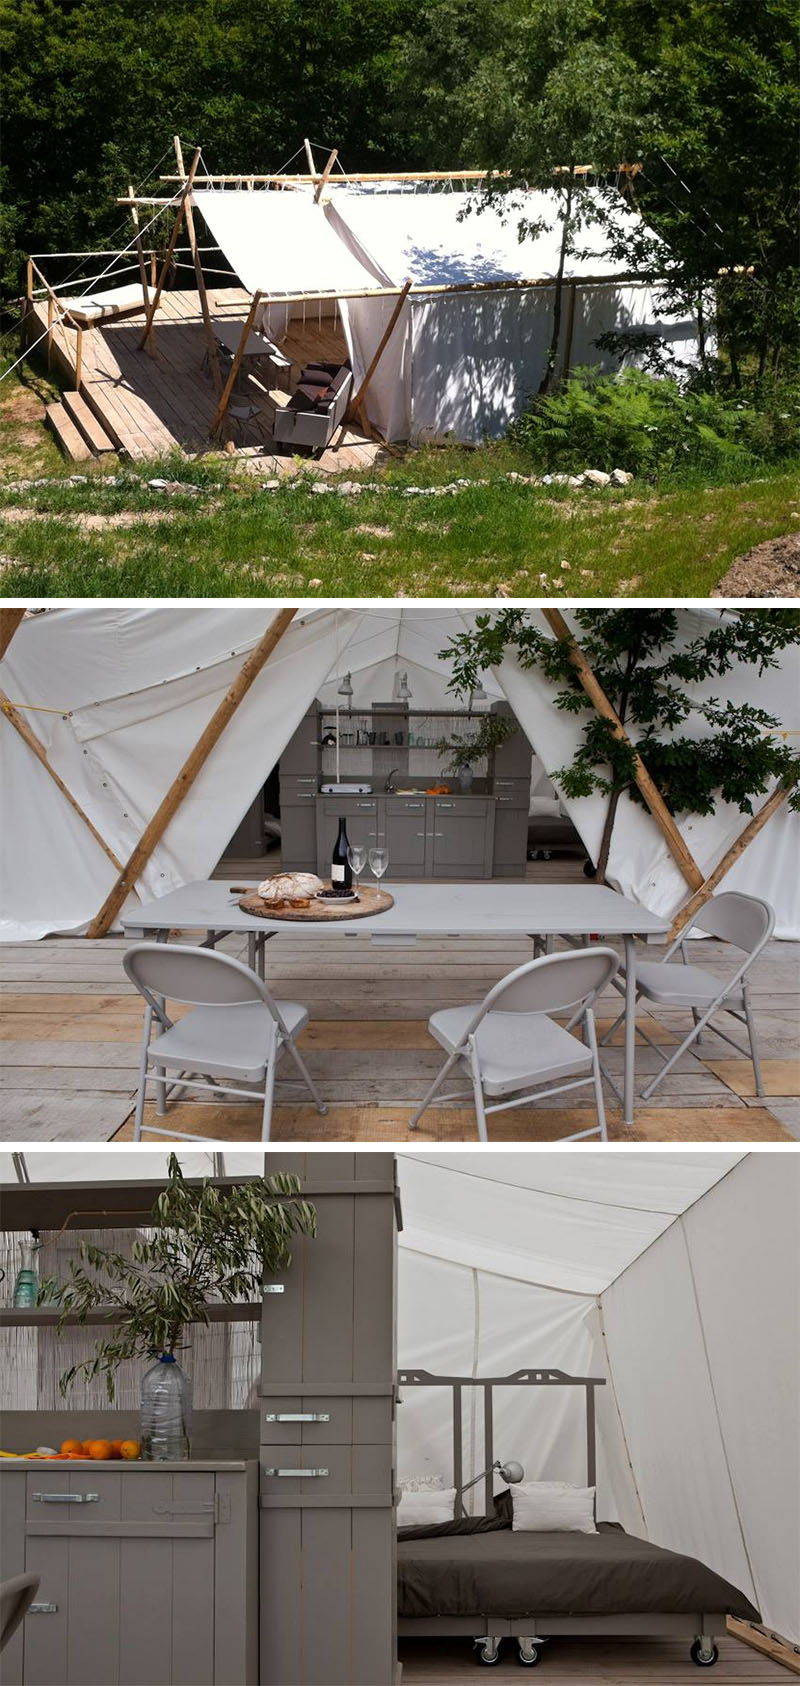 10 Glamping Destinations For People Who Want To Go Camping